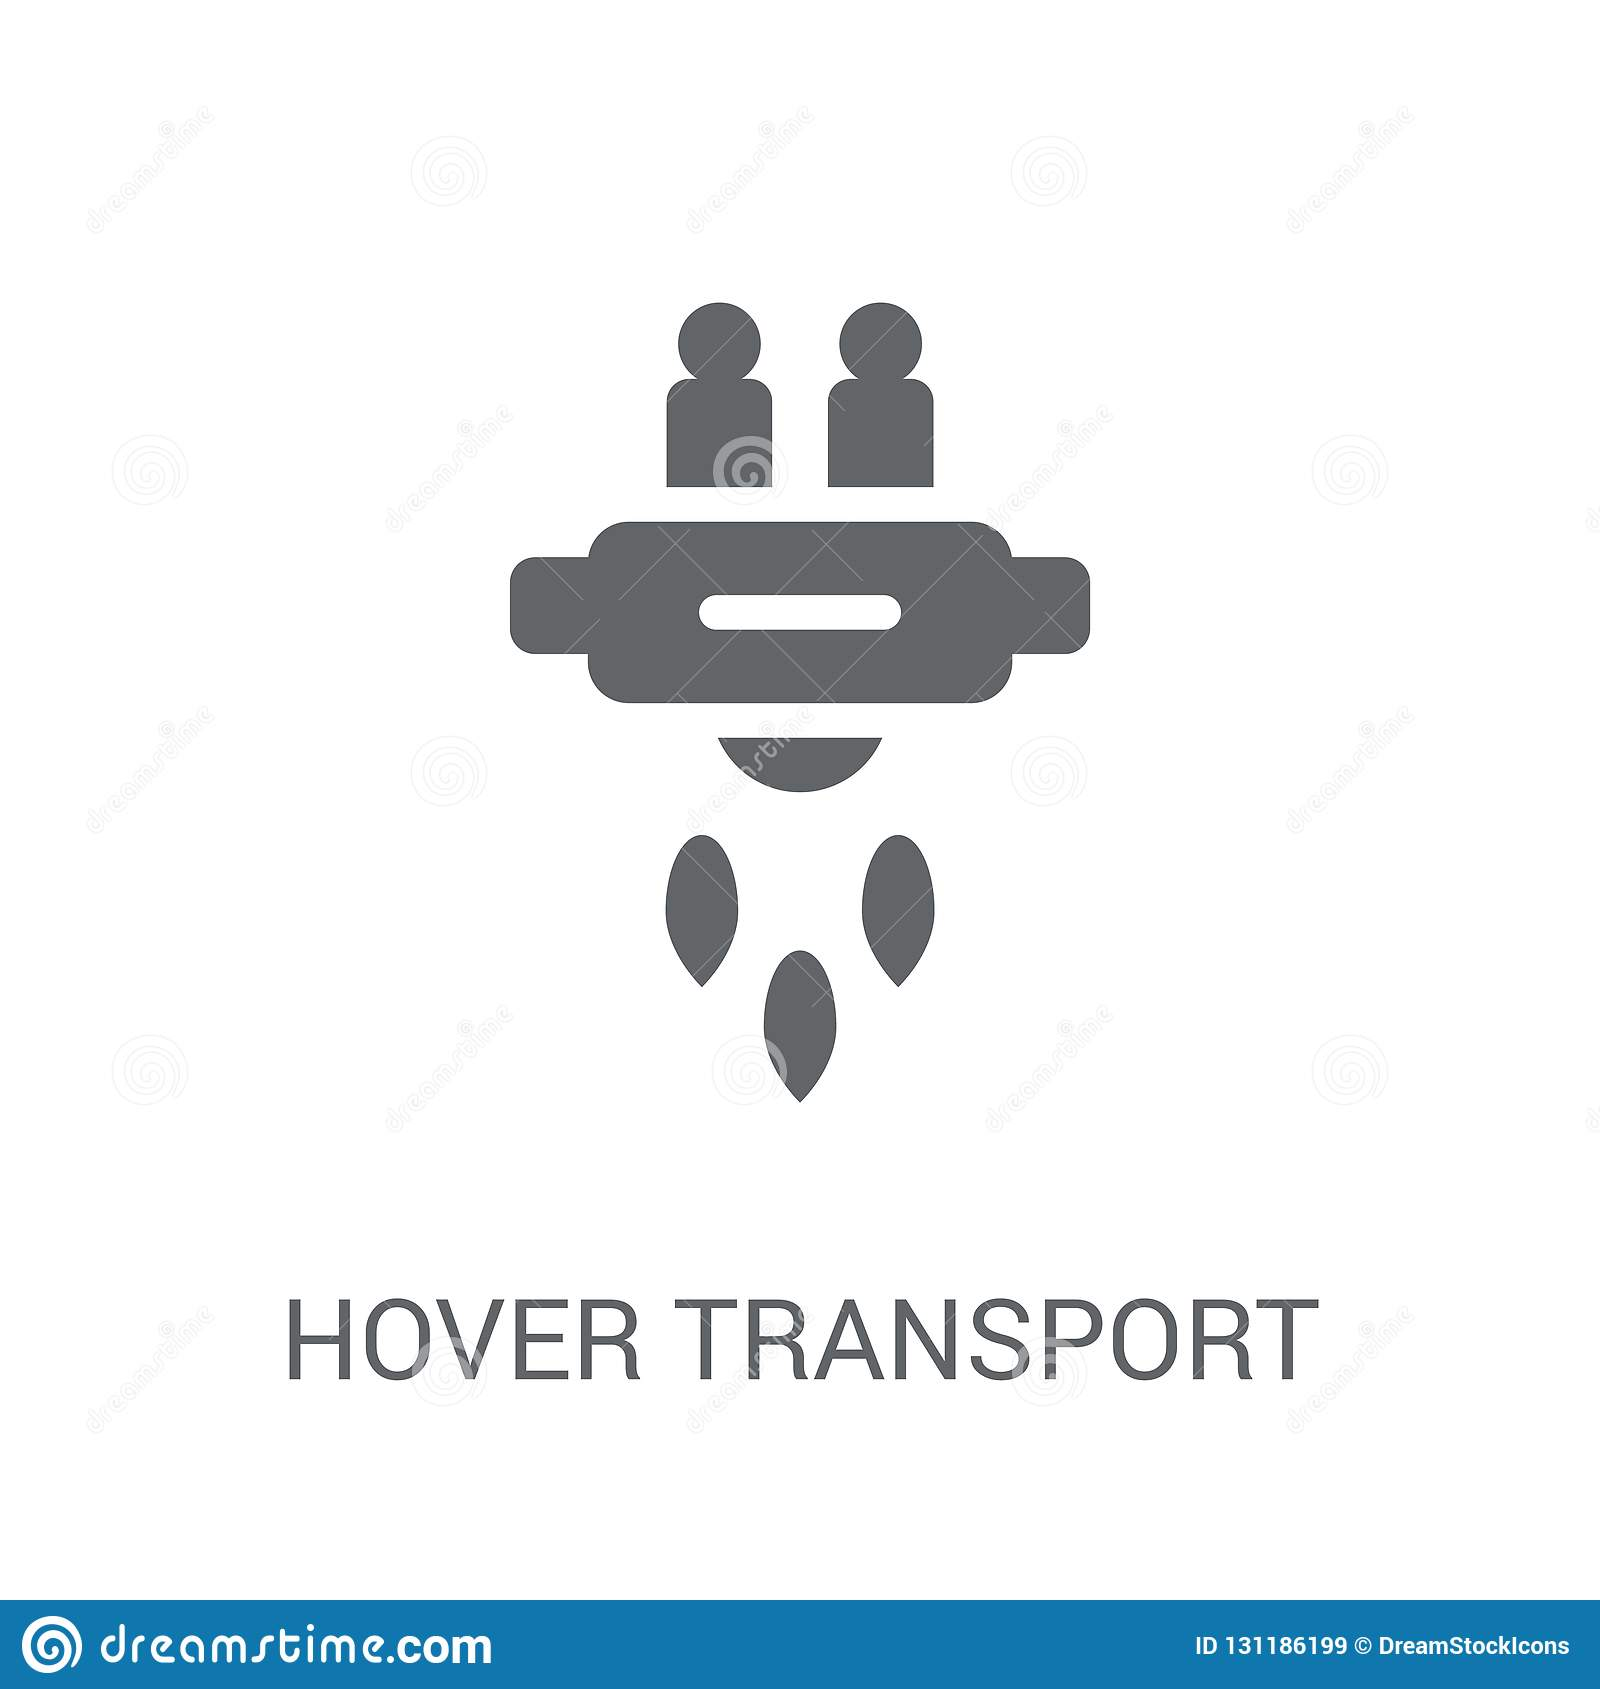 Hover transport icon. Trendy Hover transport logo concept on white background from Artificial Intelligence collection